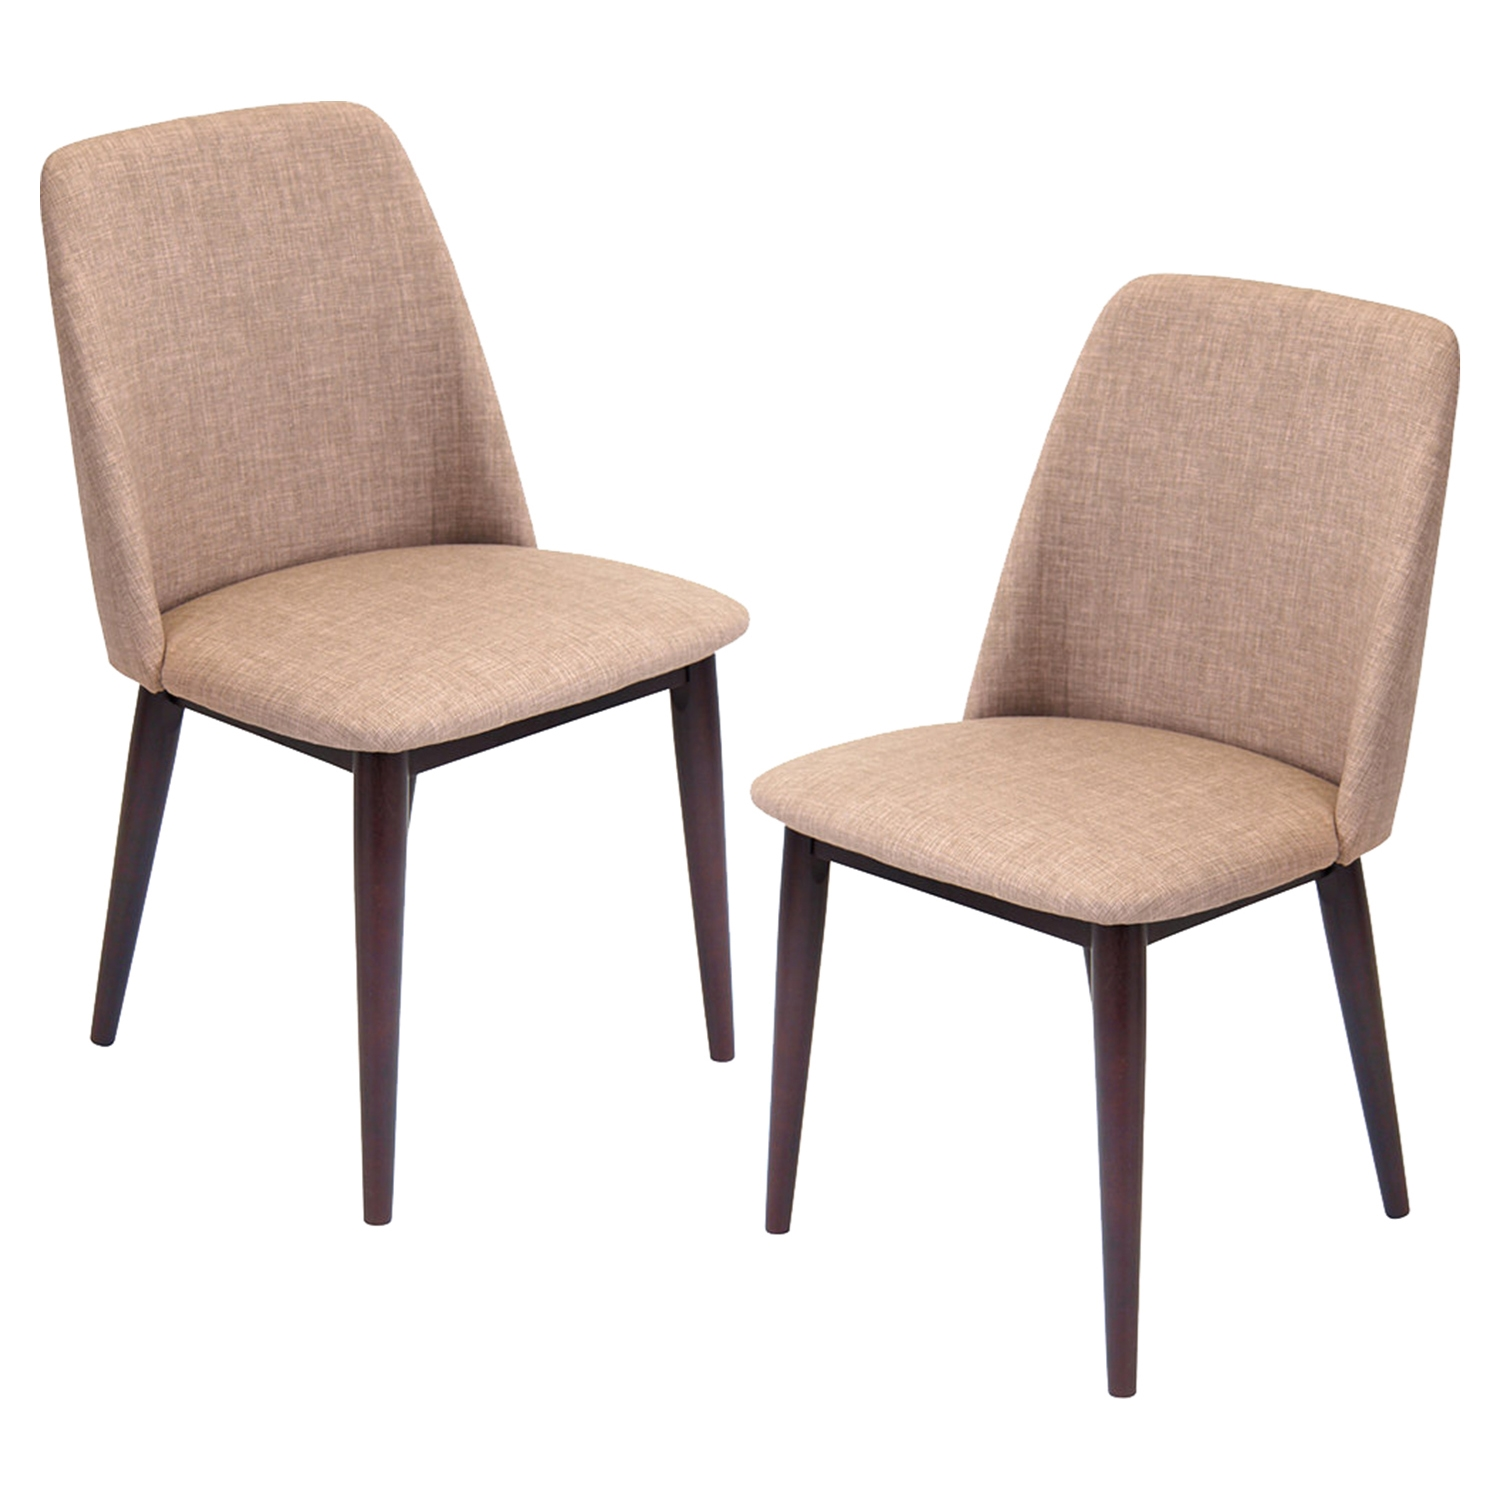 Tintori Upholstery Dining Chair - Brown, Espresso (Set of 2)